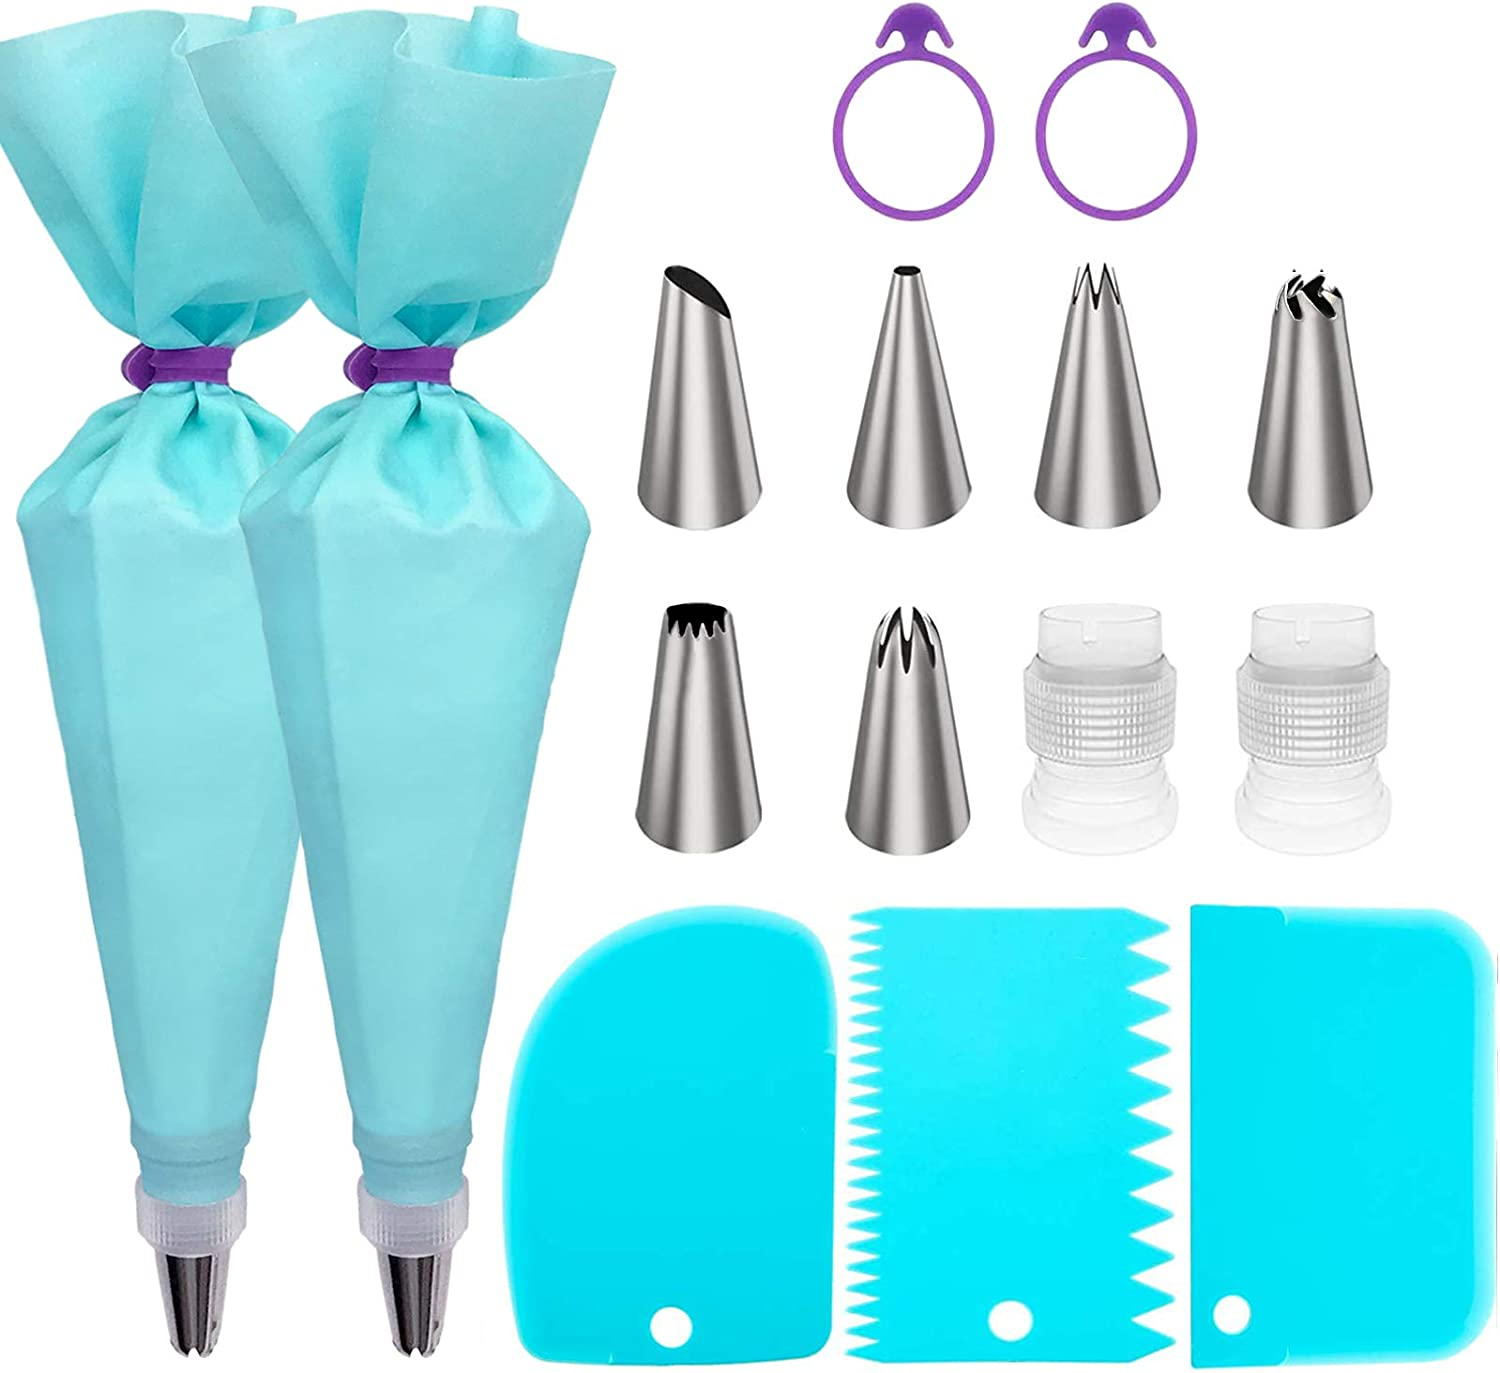 Piping Bags and Tips Set, Cake Decorating Supplies for Baking with Reusable Pastry Bags and Tips, Standard Converters, Silicone Rings, Cake Decorating Tools for Cookie Icing, Cake, Cupcake